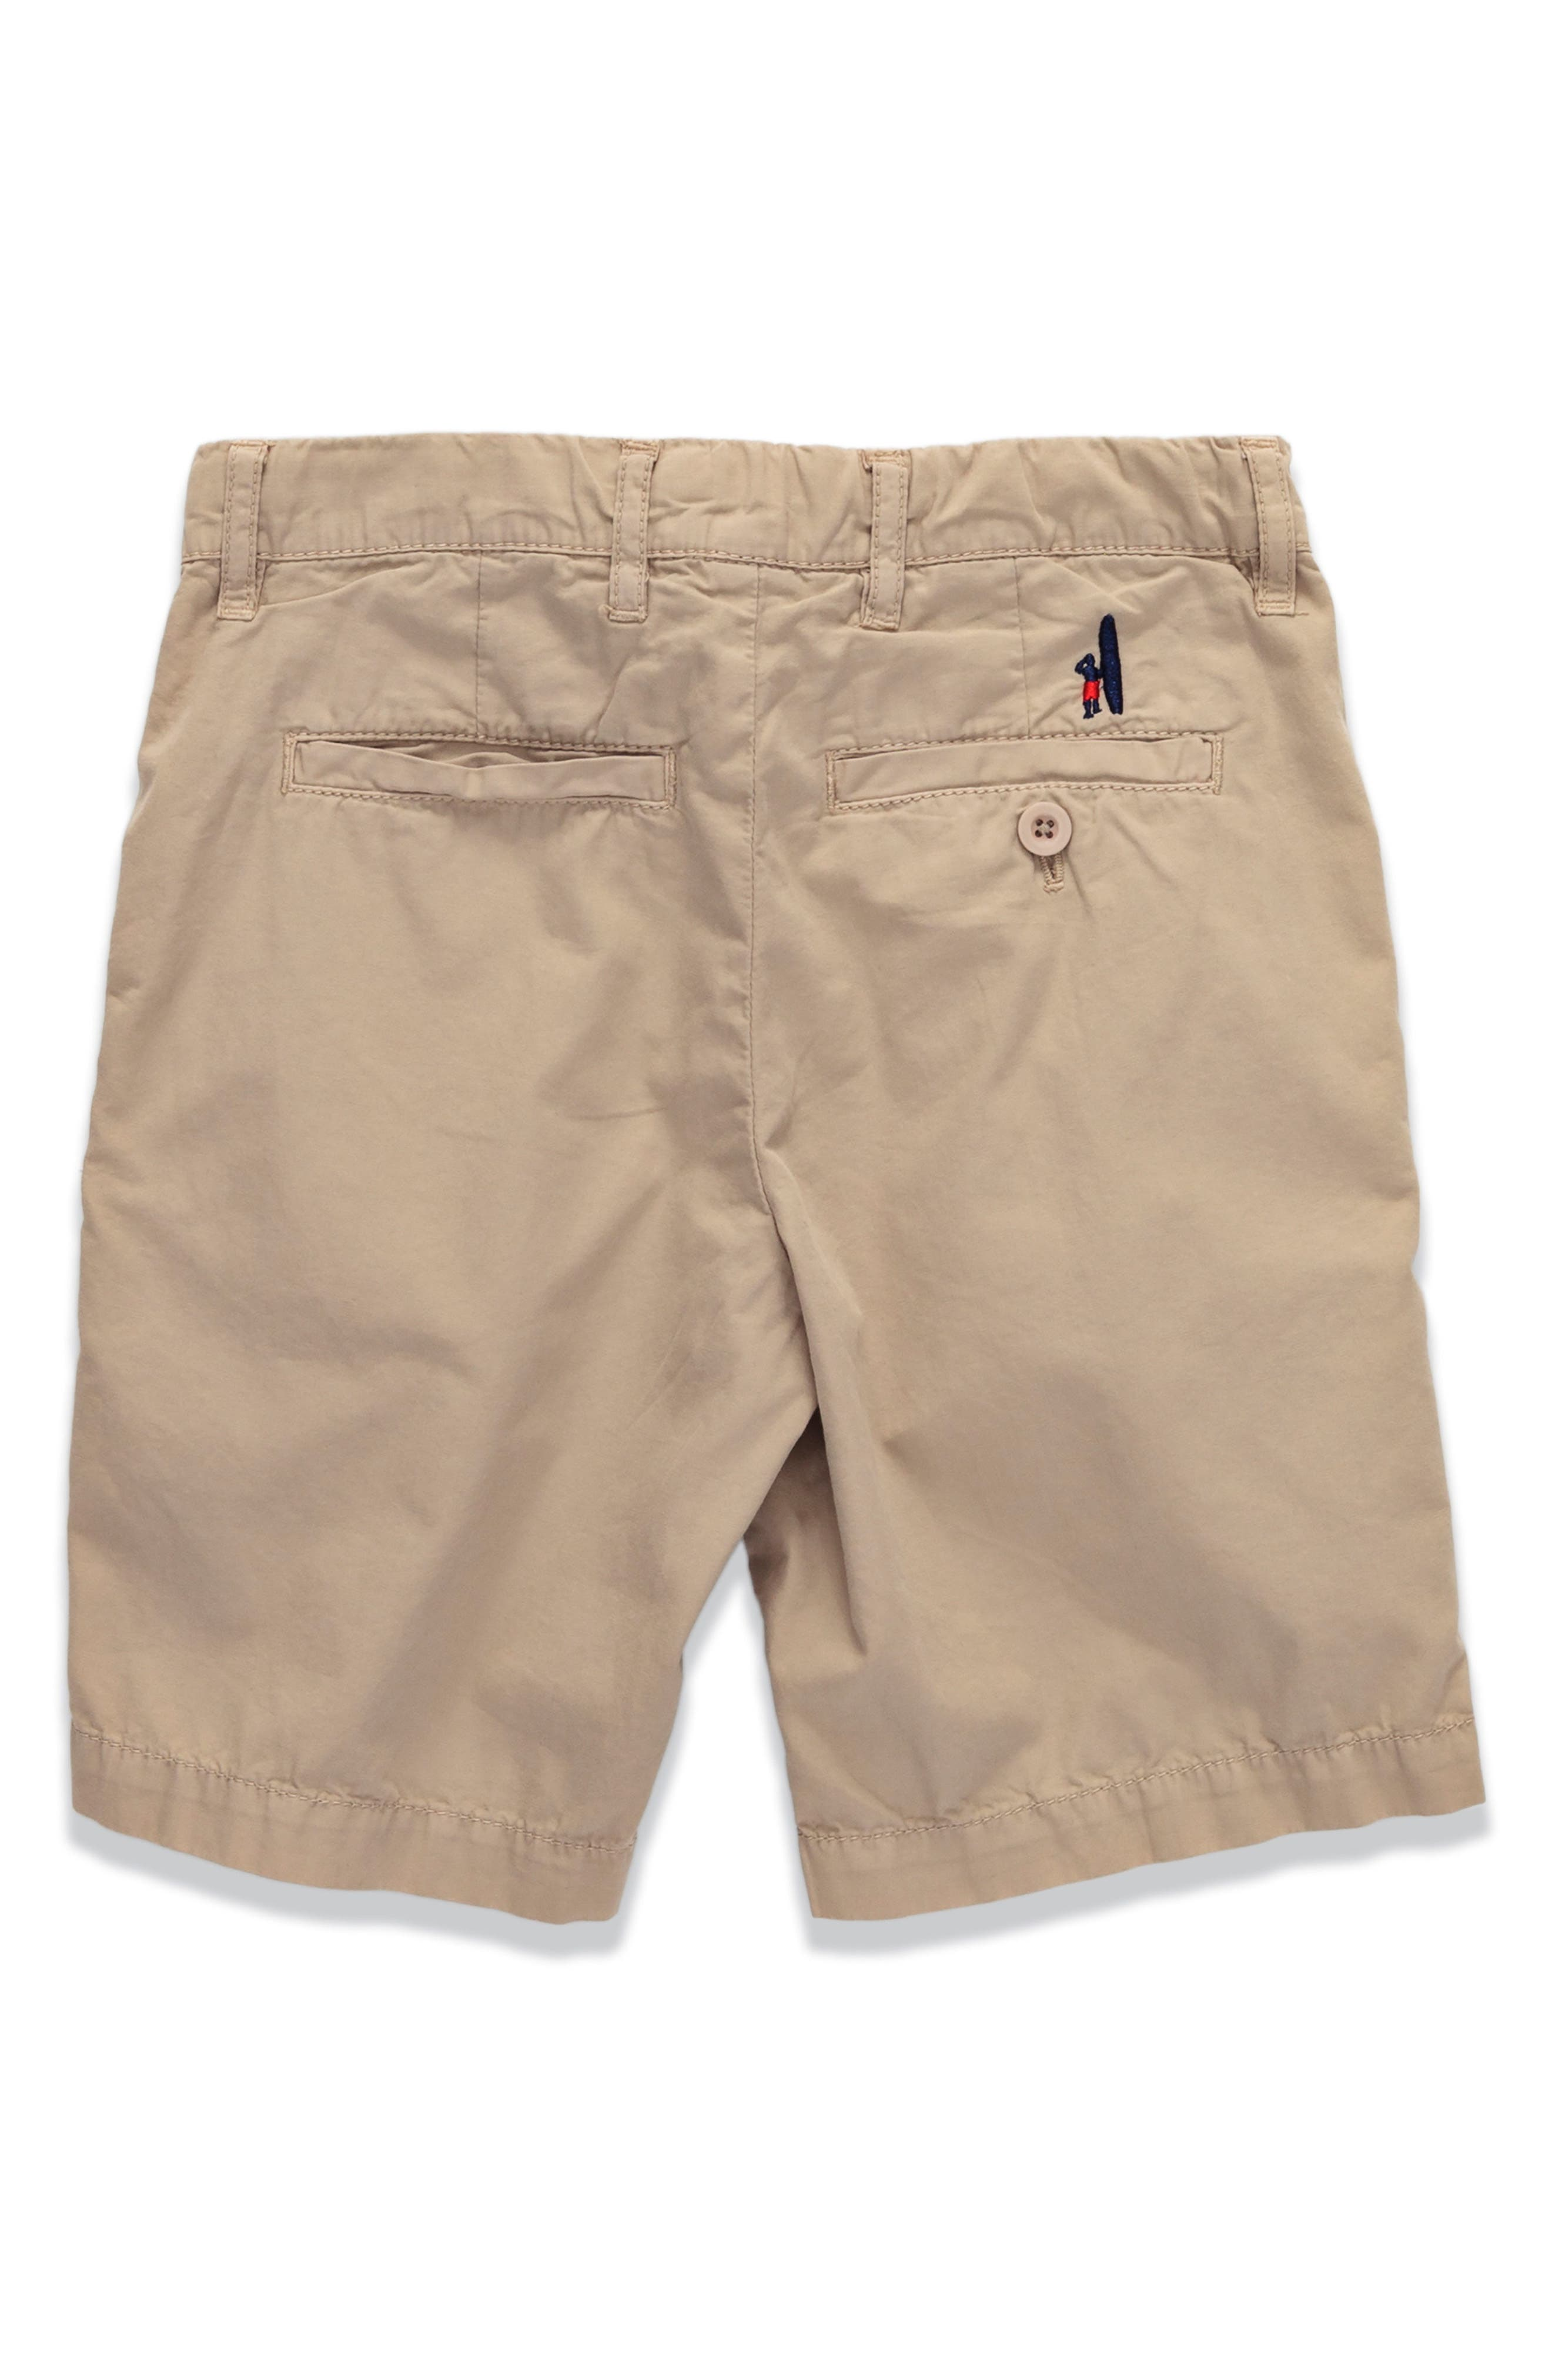 Derby Poplin Shorts,                         Main,                         color,